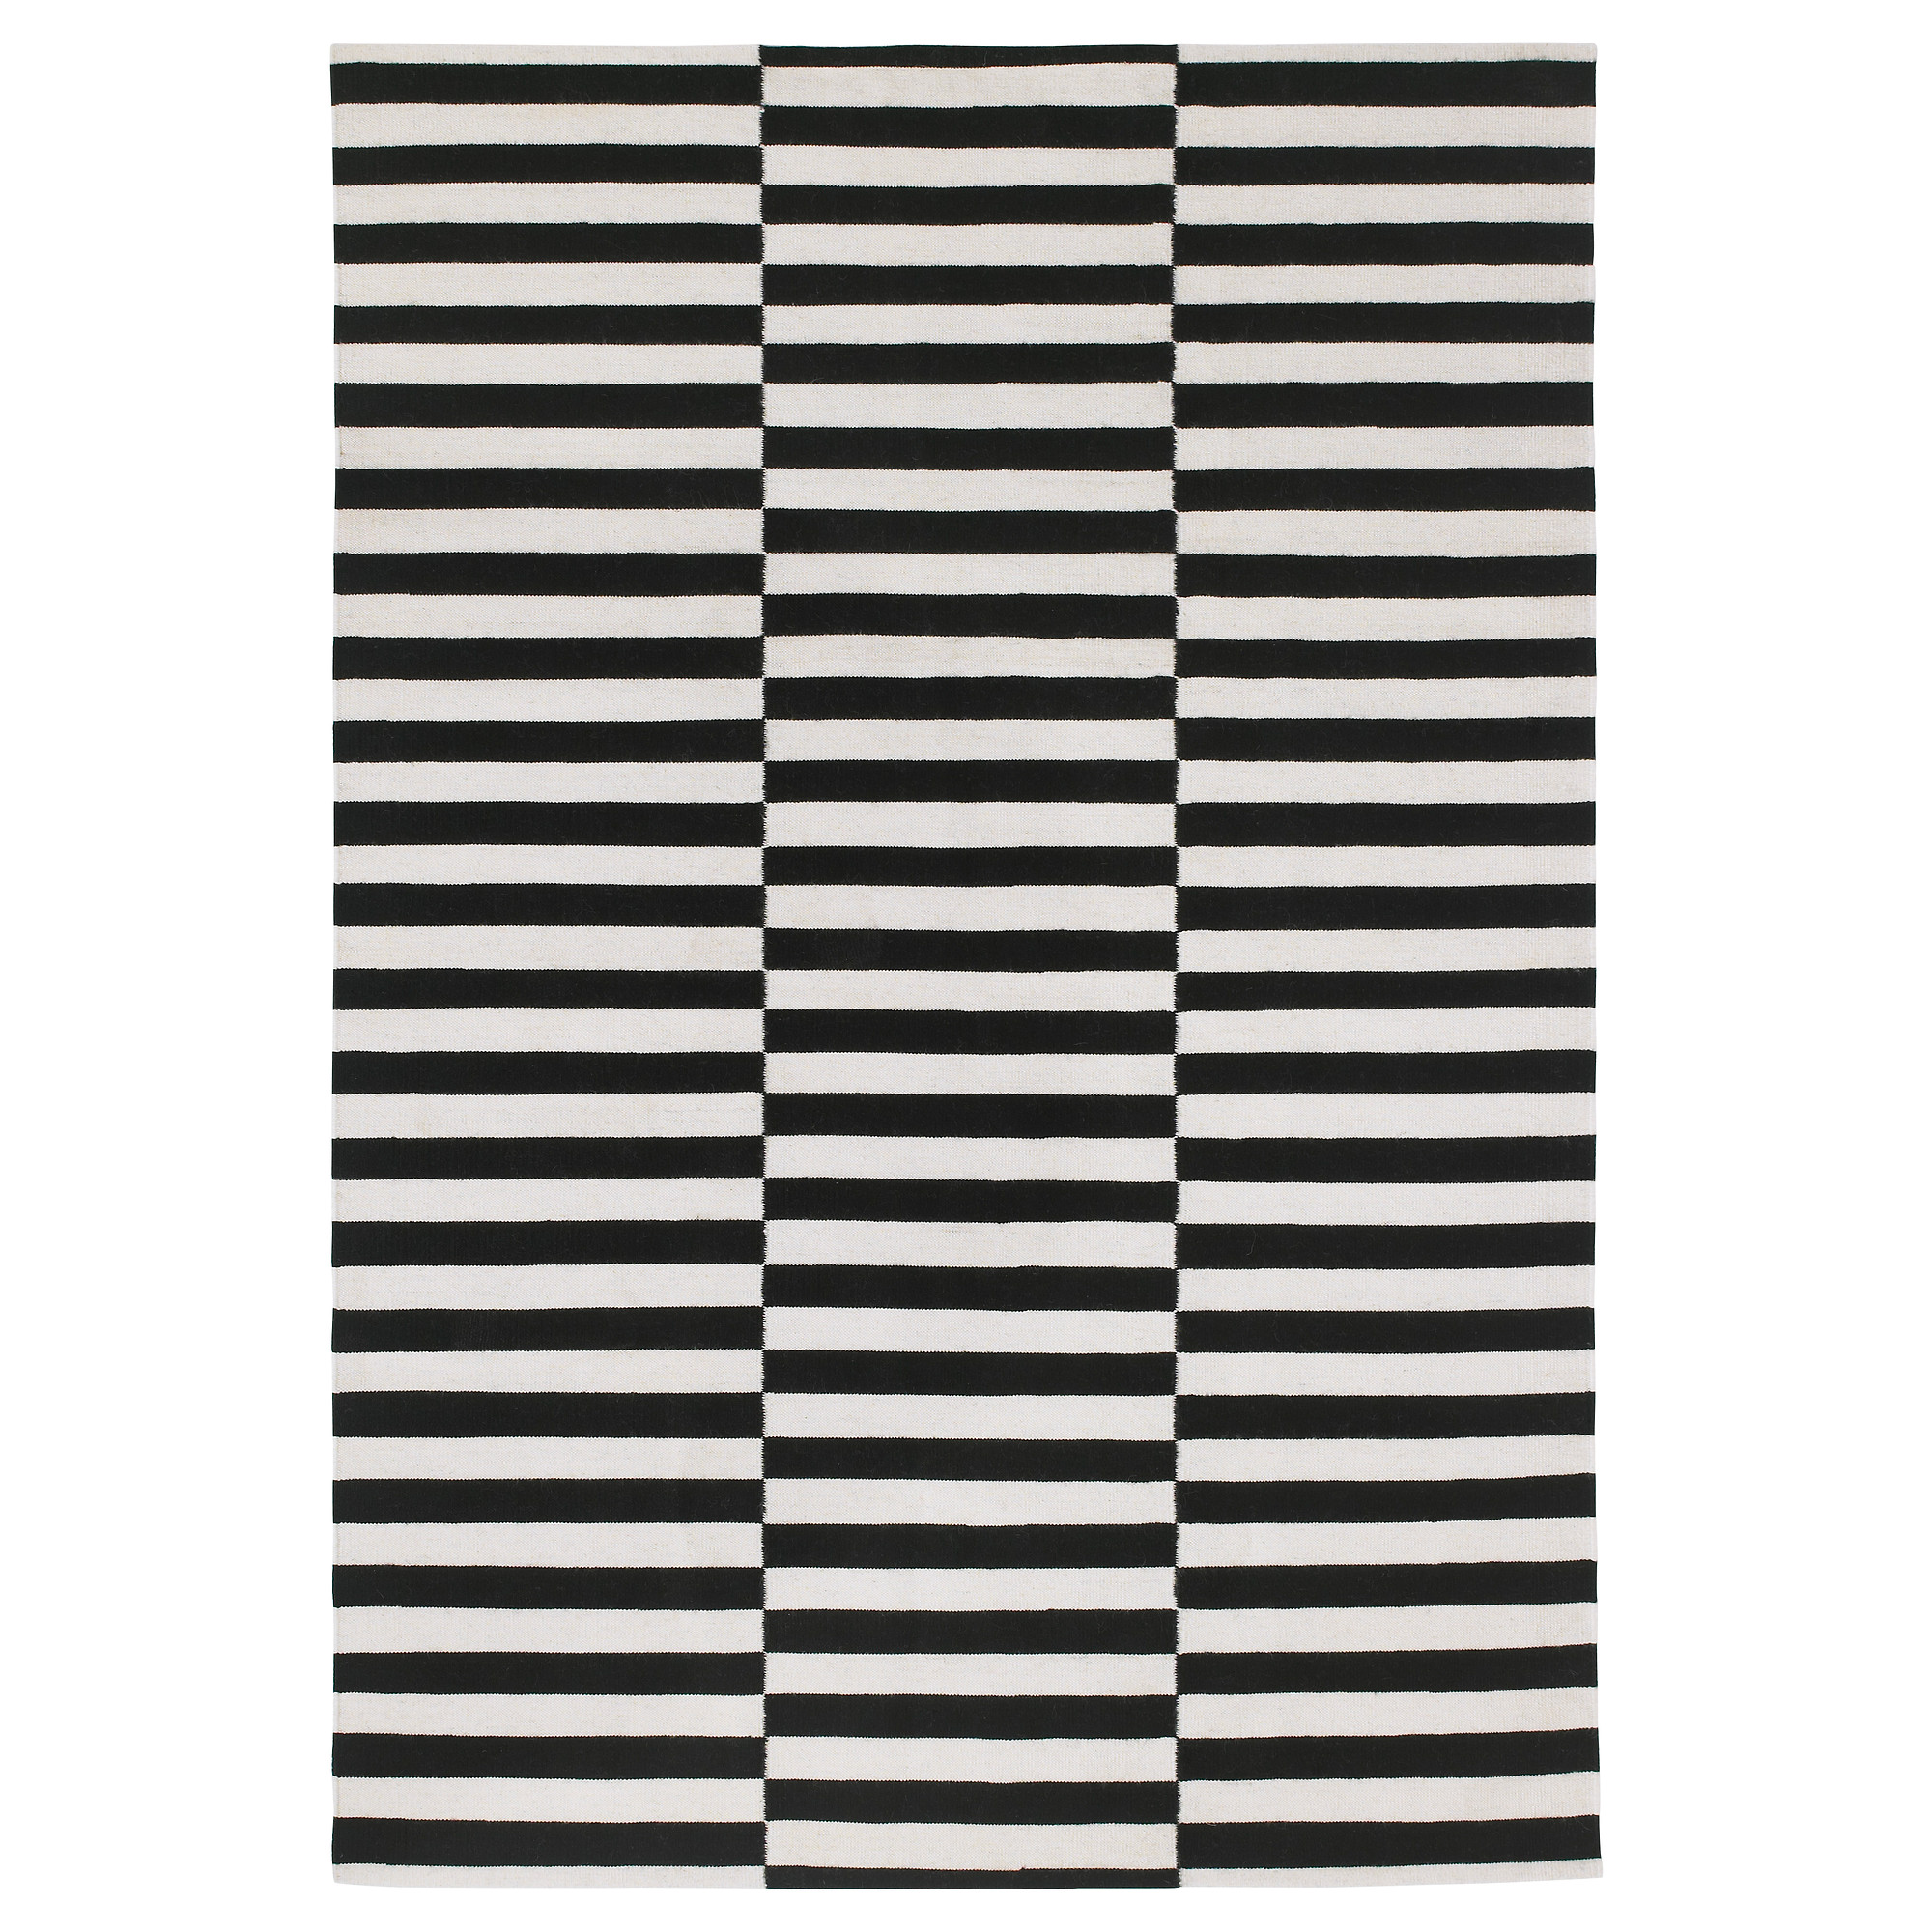 black and white rug stockholm rug, flatwoven - 170x240 cm - ikea DOFGNNX